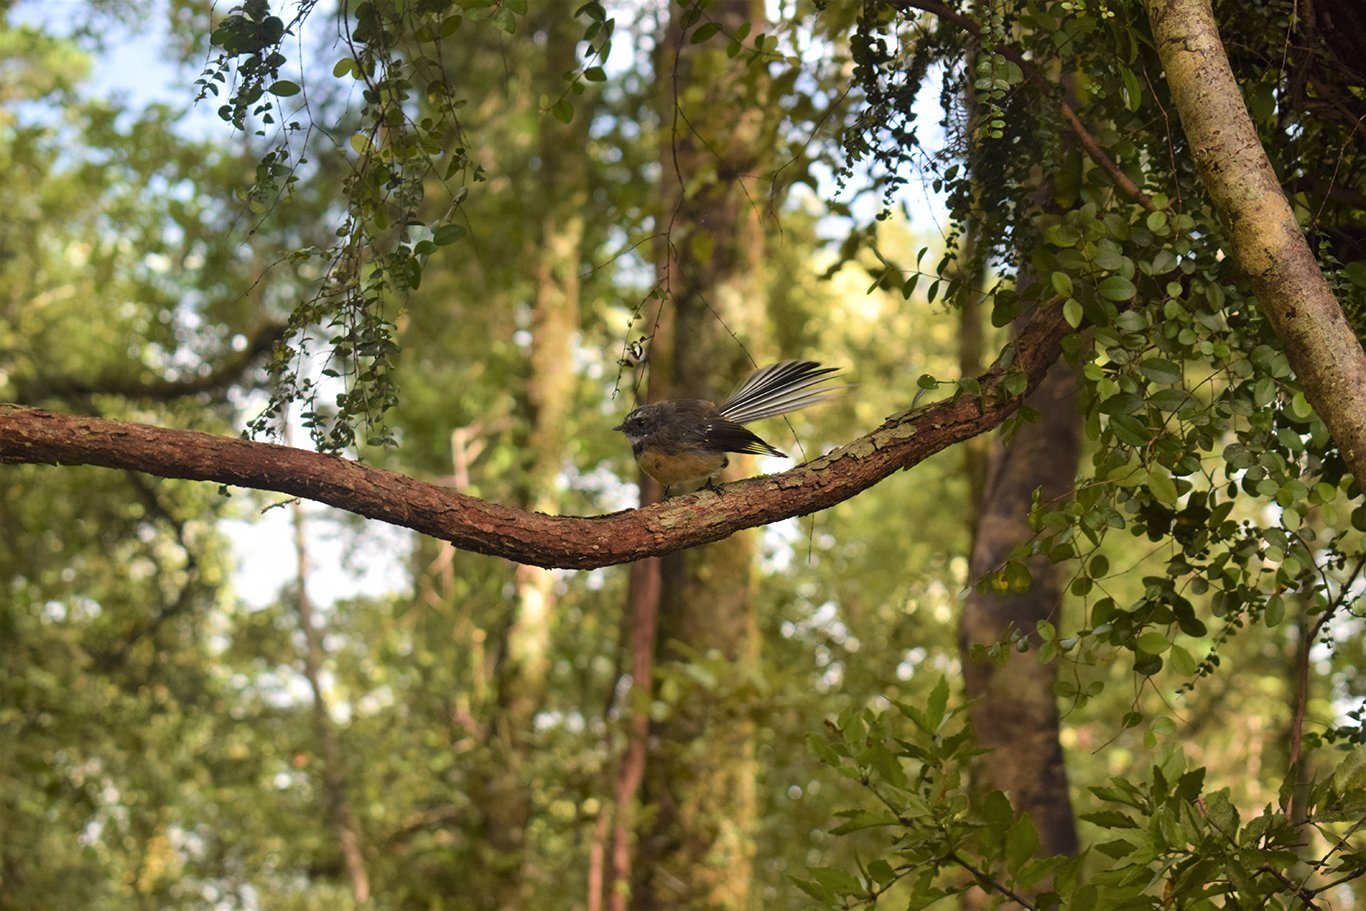 A New Zealand Fantail in the forest on Lake Mapourika